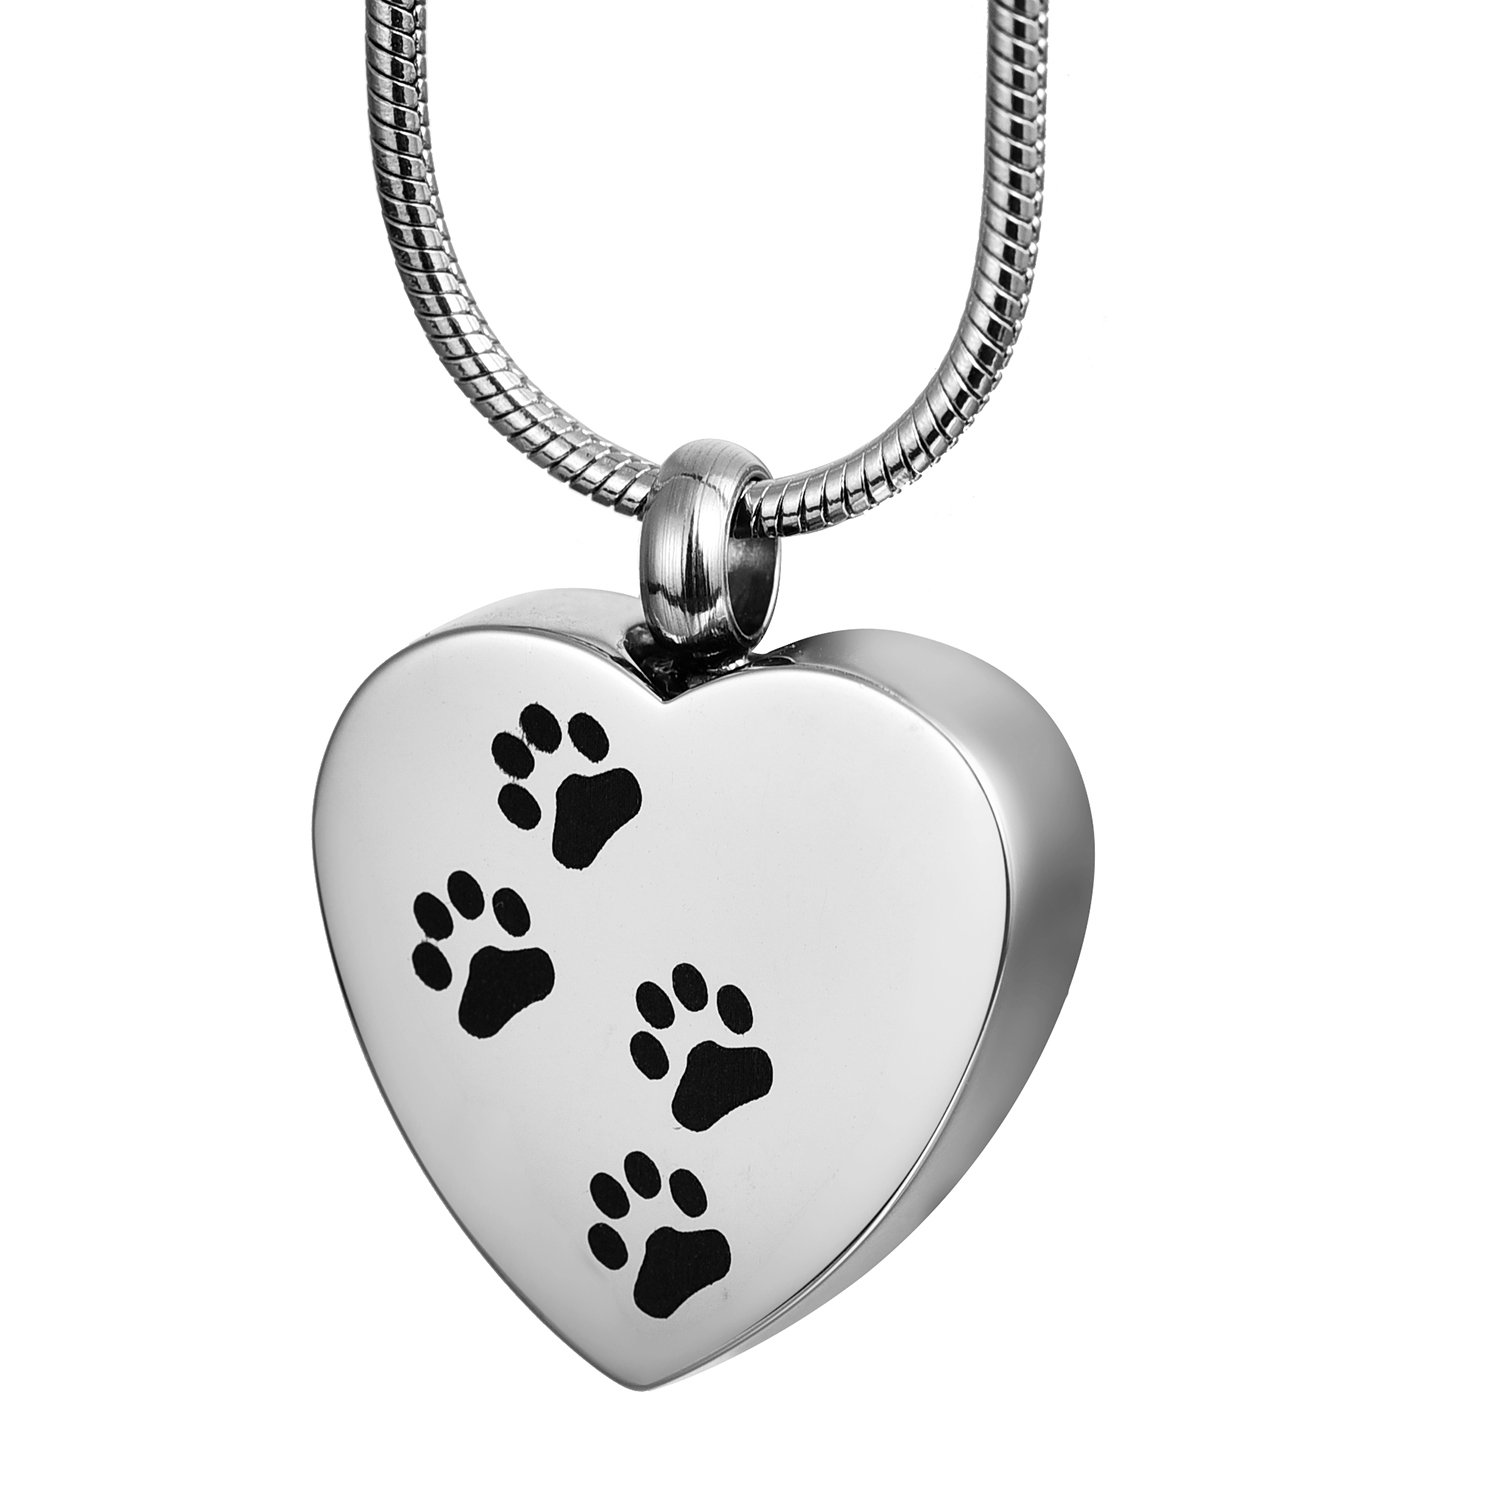 COCO Park Engraving Dog Paw Pet Keepsake Jewelry Cremation Urn Necklace Memorial Ashes Pendant -Silver